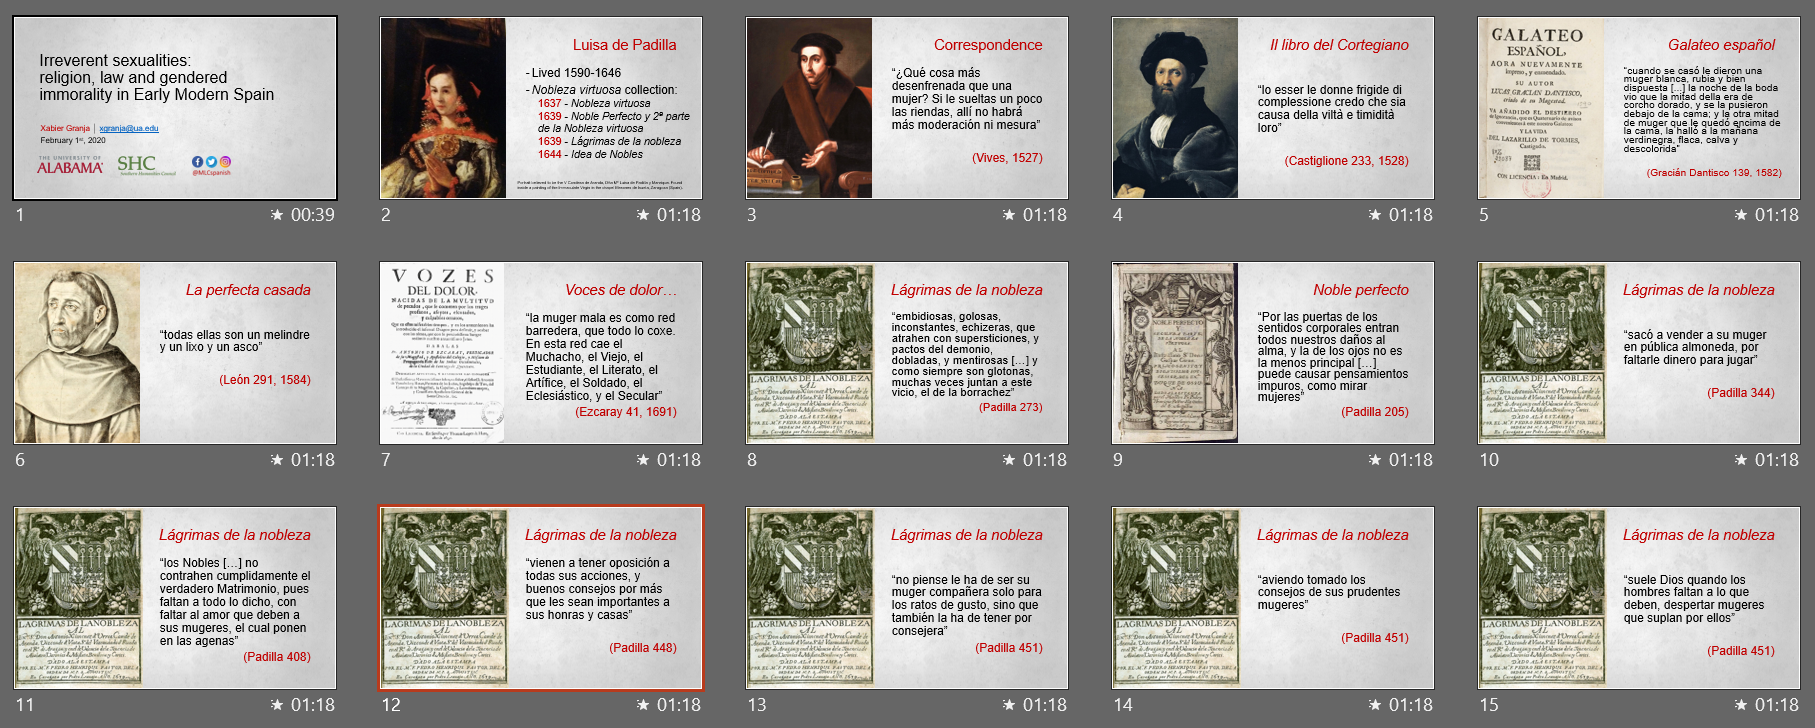 a sample of the author's actual presentation slides